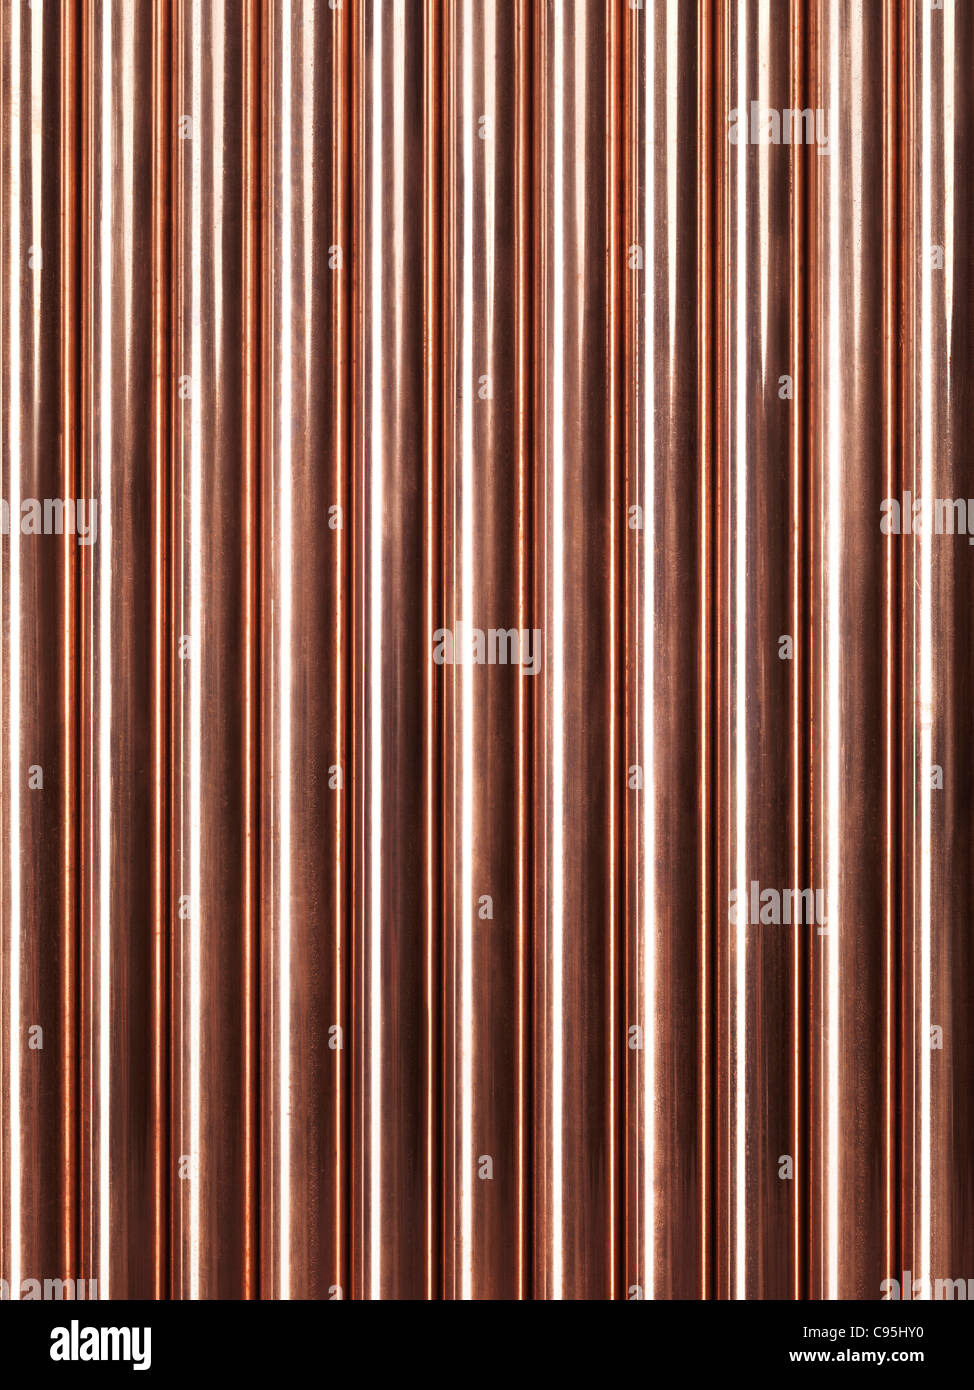 Shiny plumbing copper tubes abstract artistic background - Stock Image